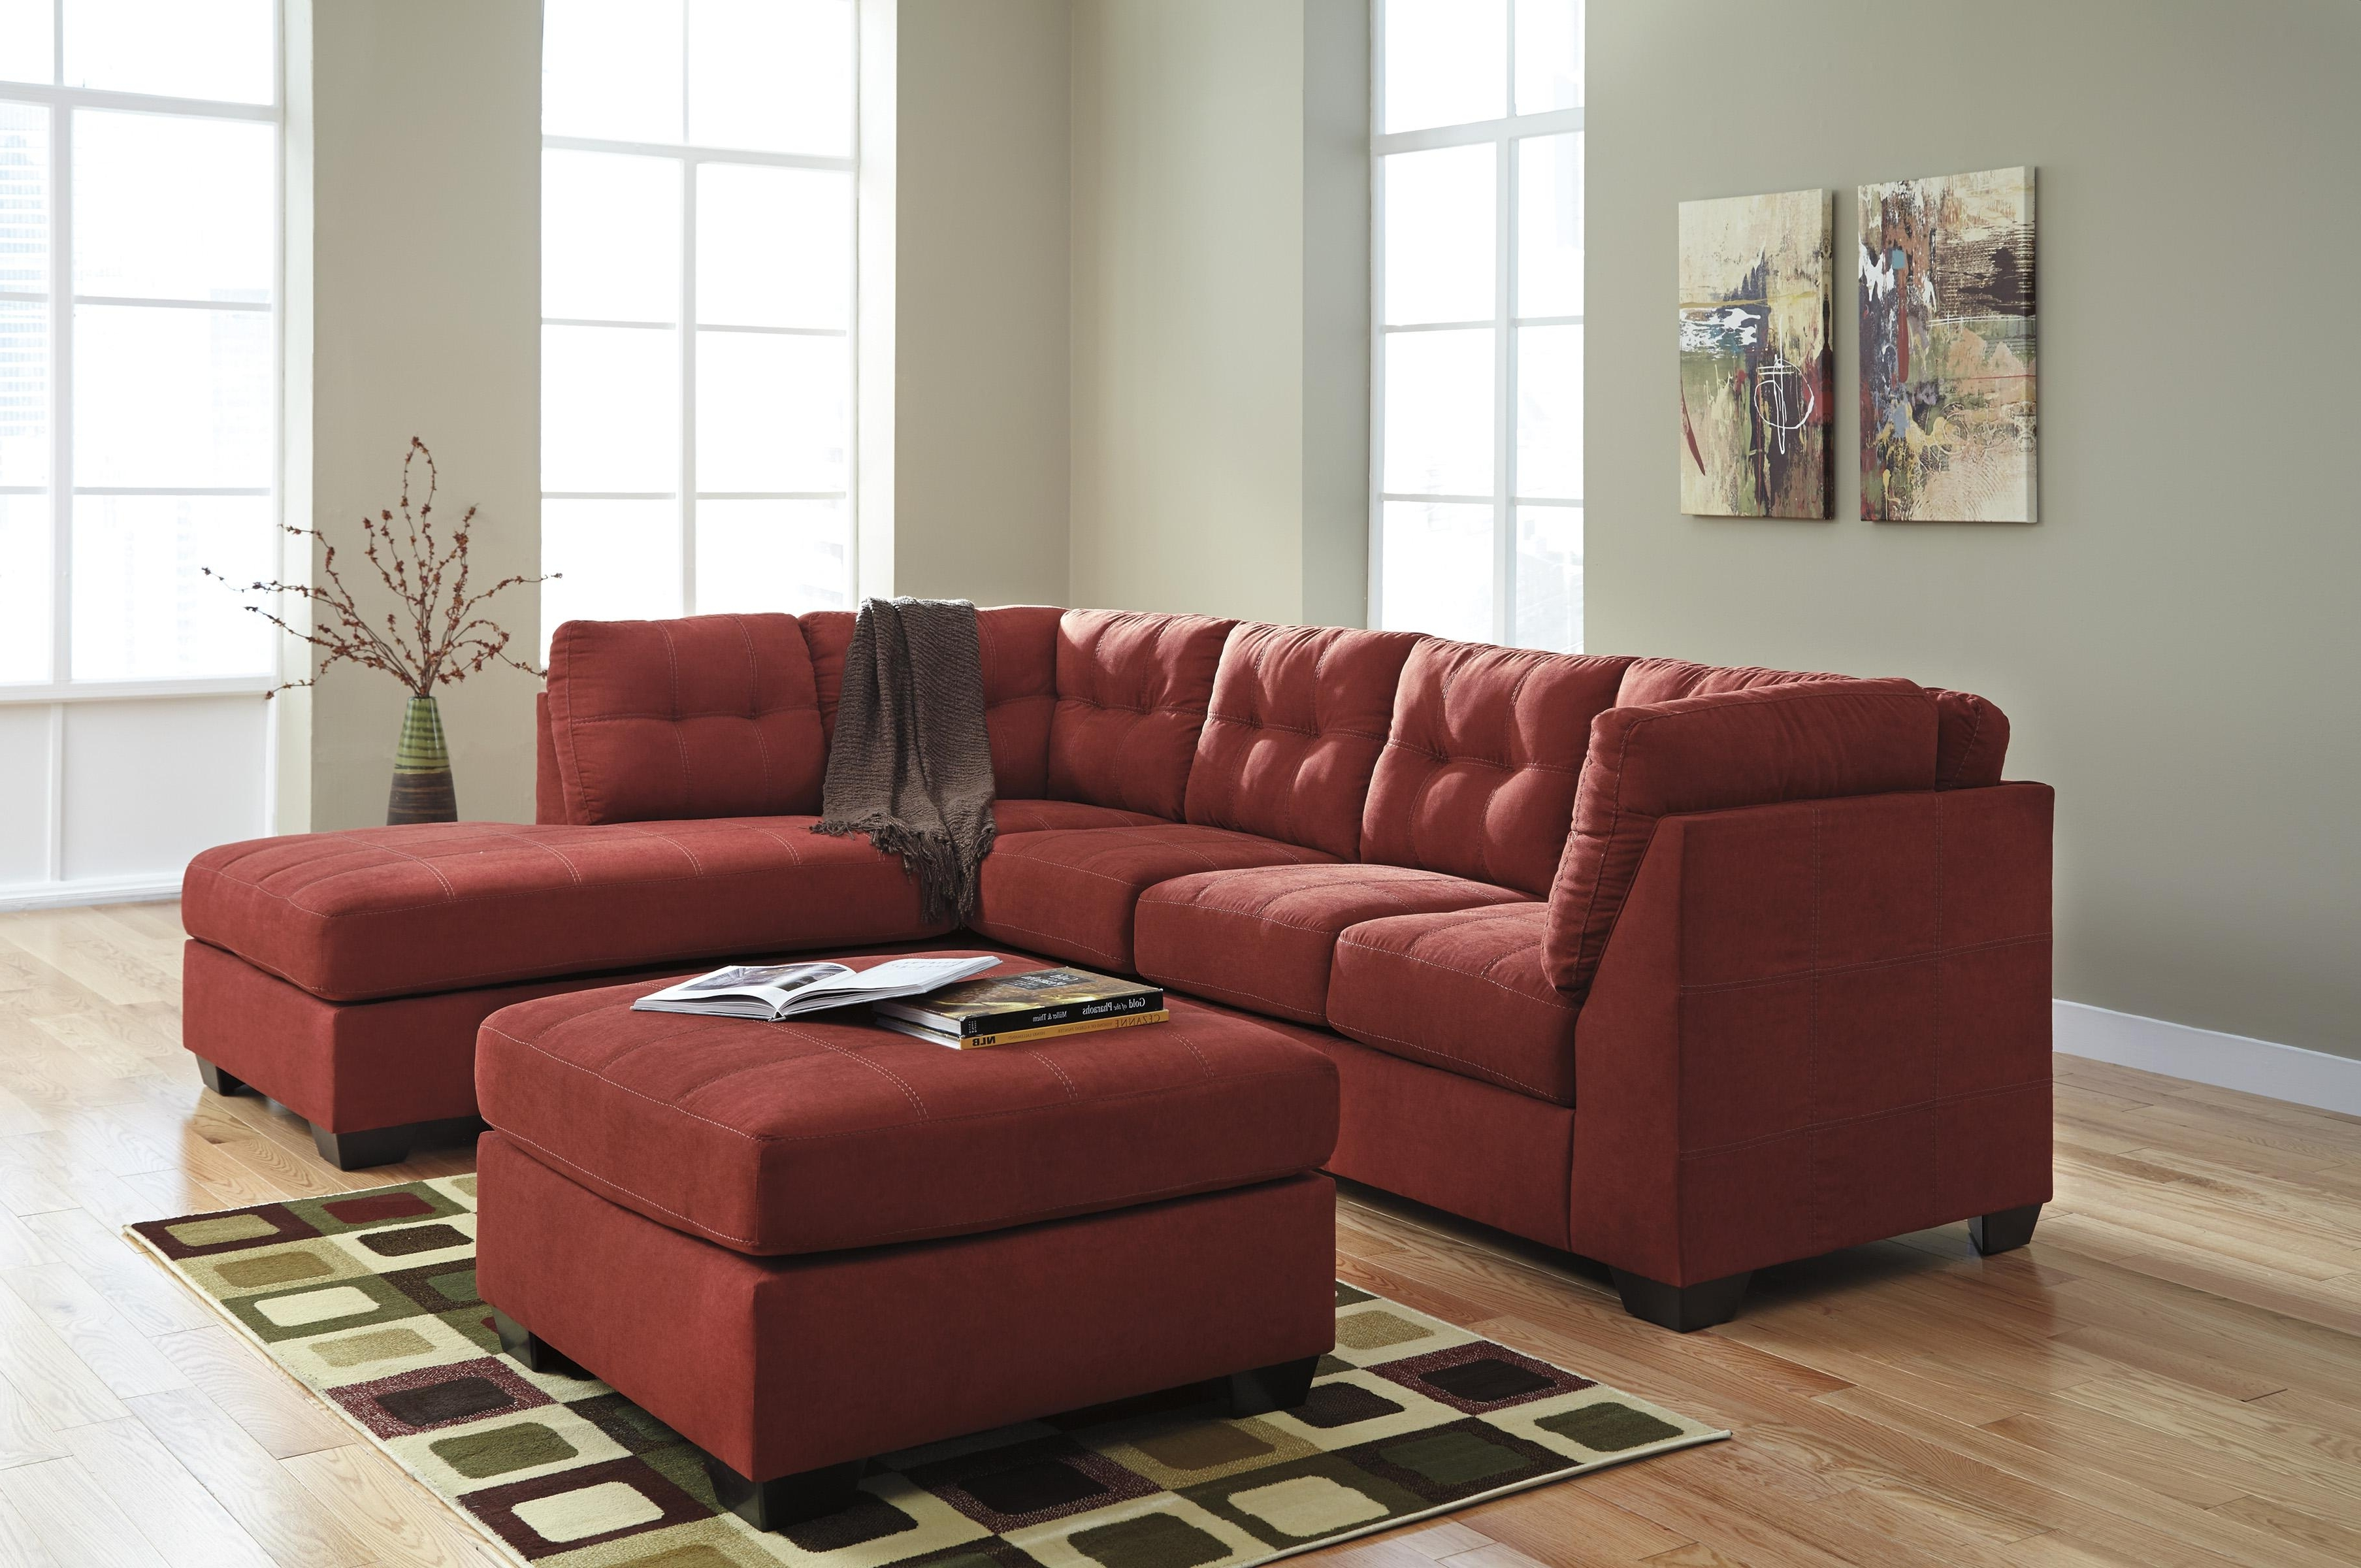 Most Recent Joining Hardware Sectional Sofas In Furniture : 5060 Recliner Sectional Sofa Costco $699 Corner Couch (View 7 of 15)